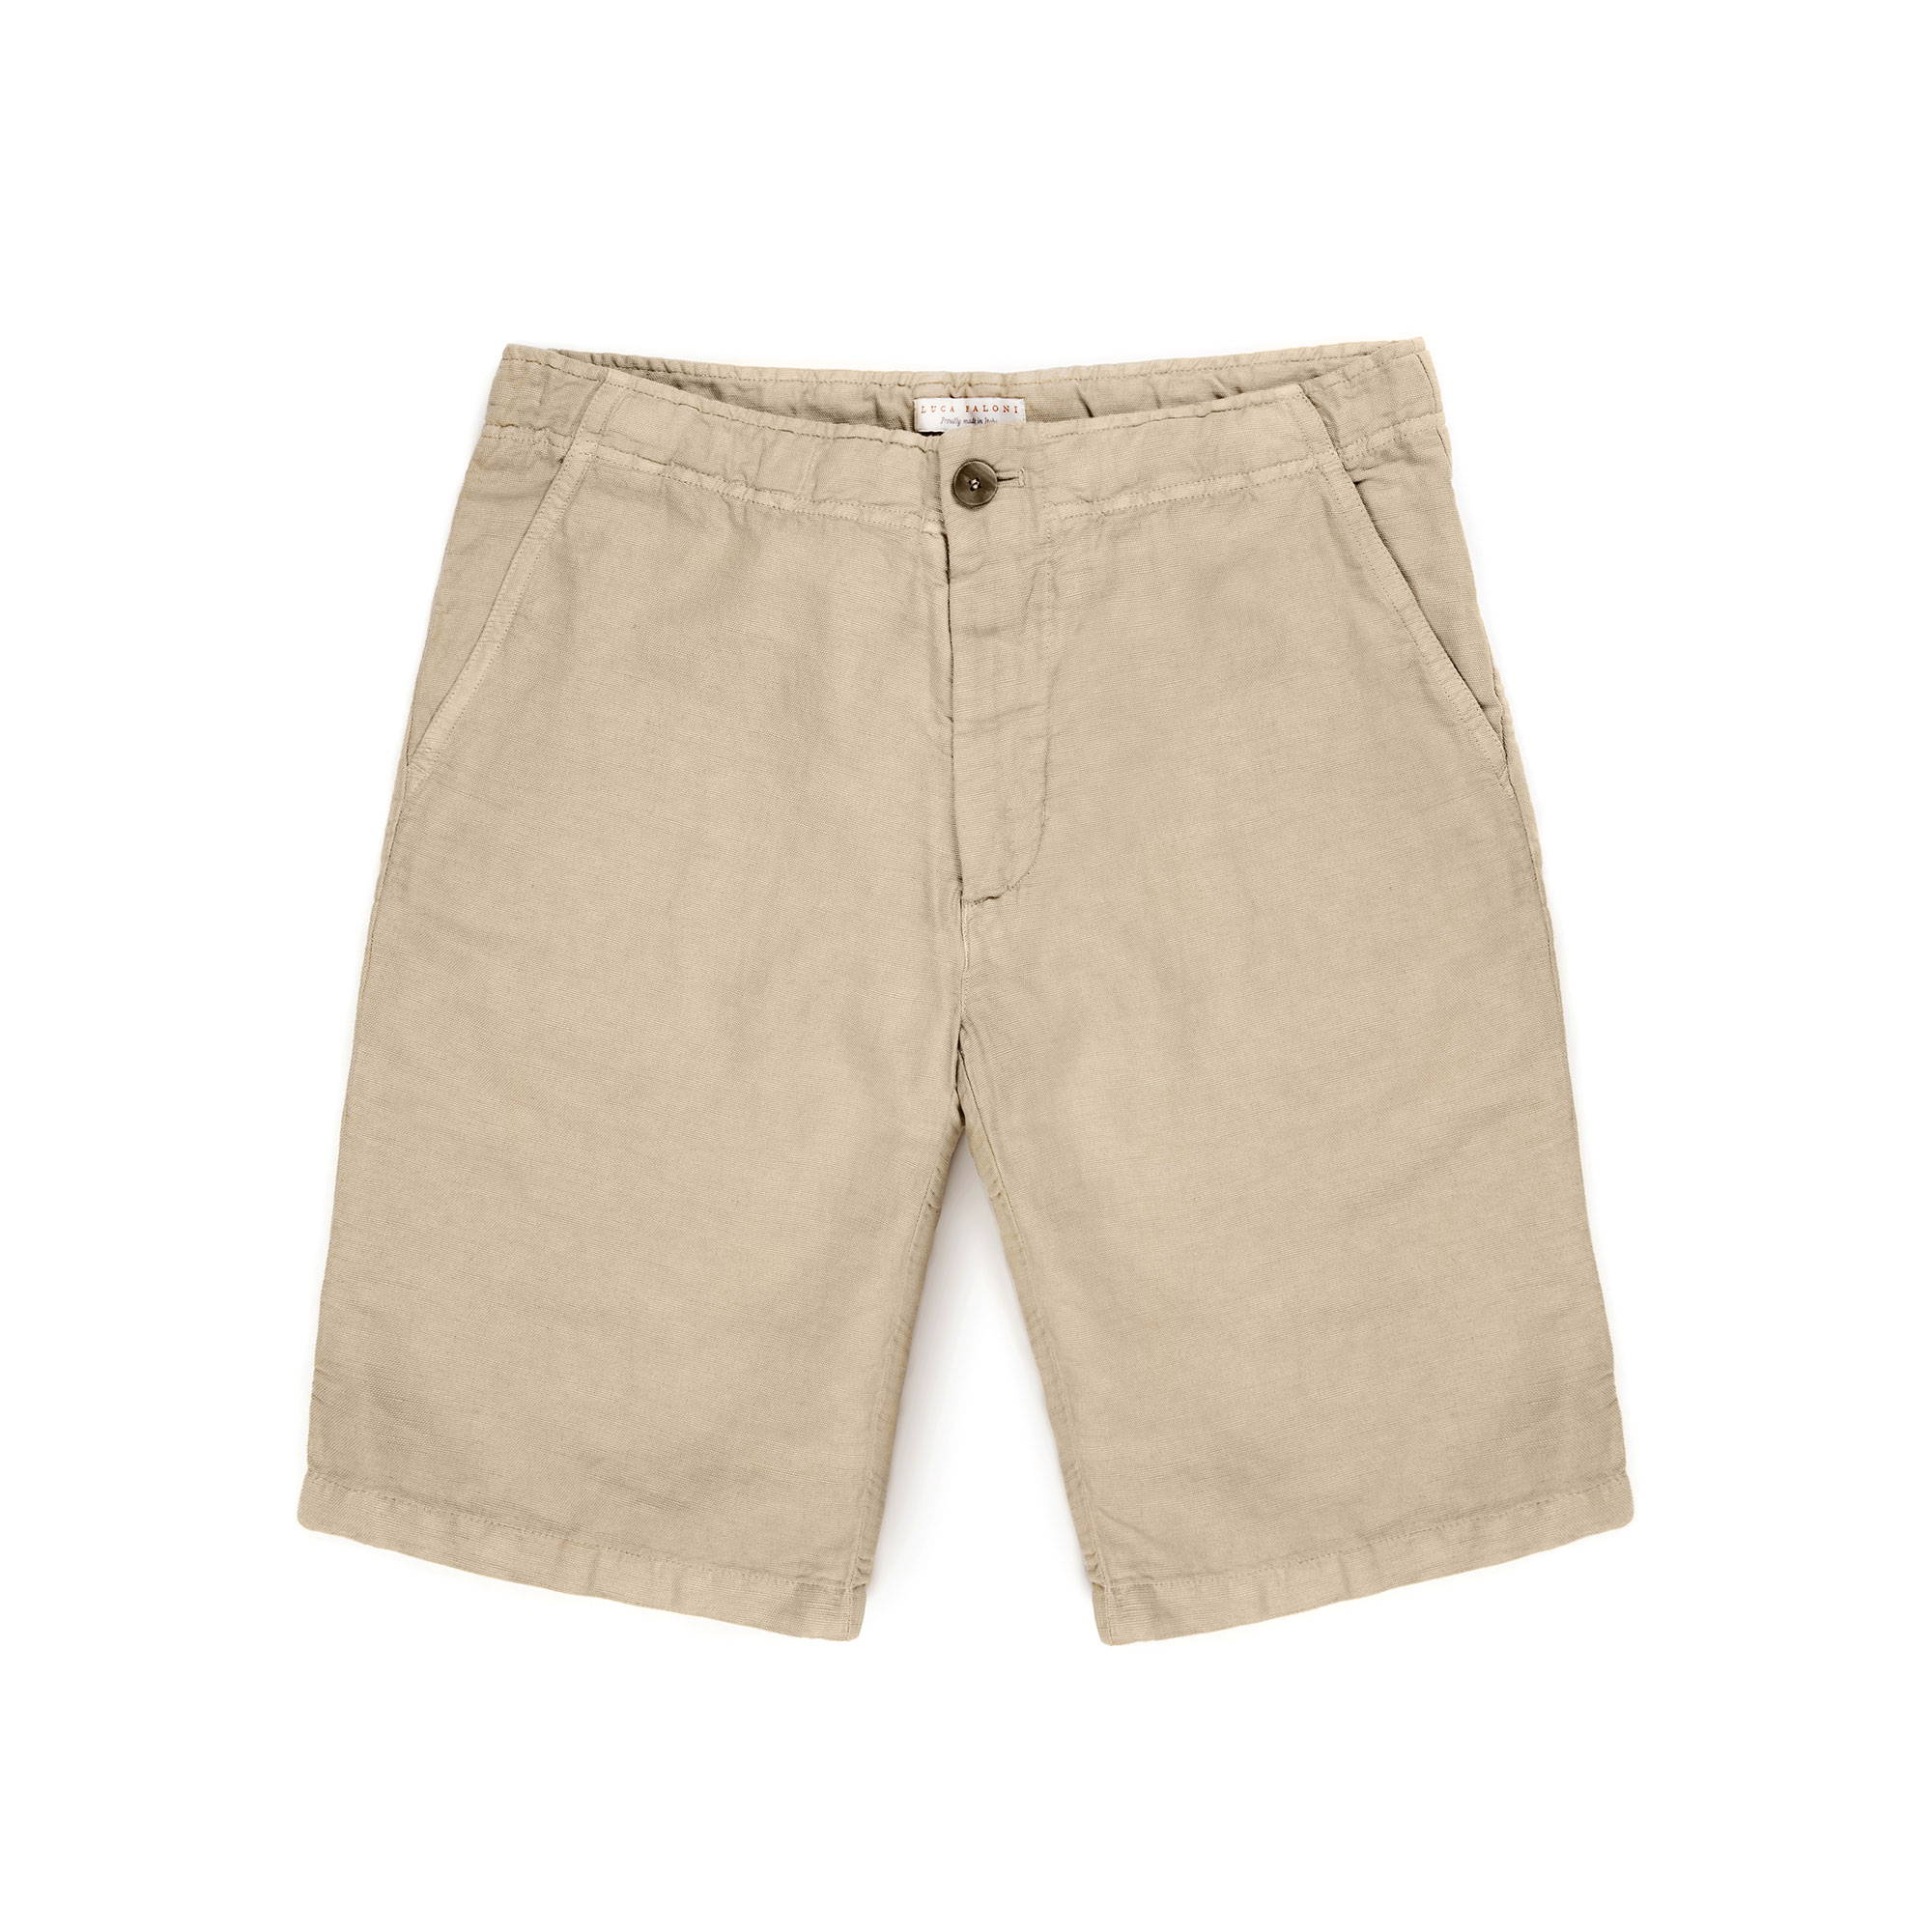 Luca Faloni Sand Panarea Linen Shorts Made in Italy